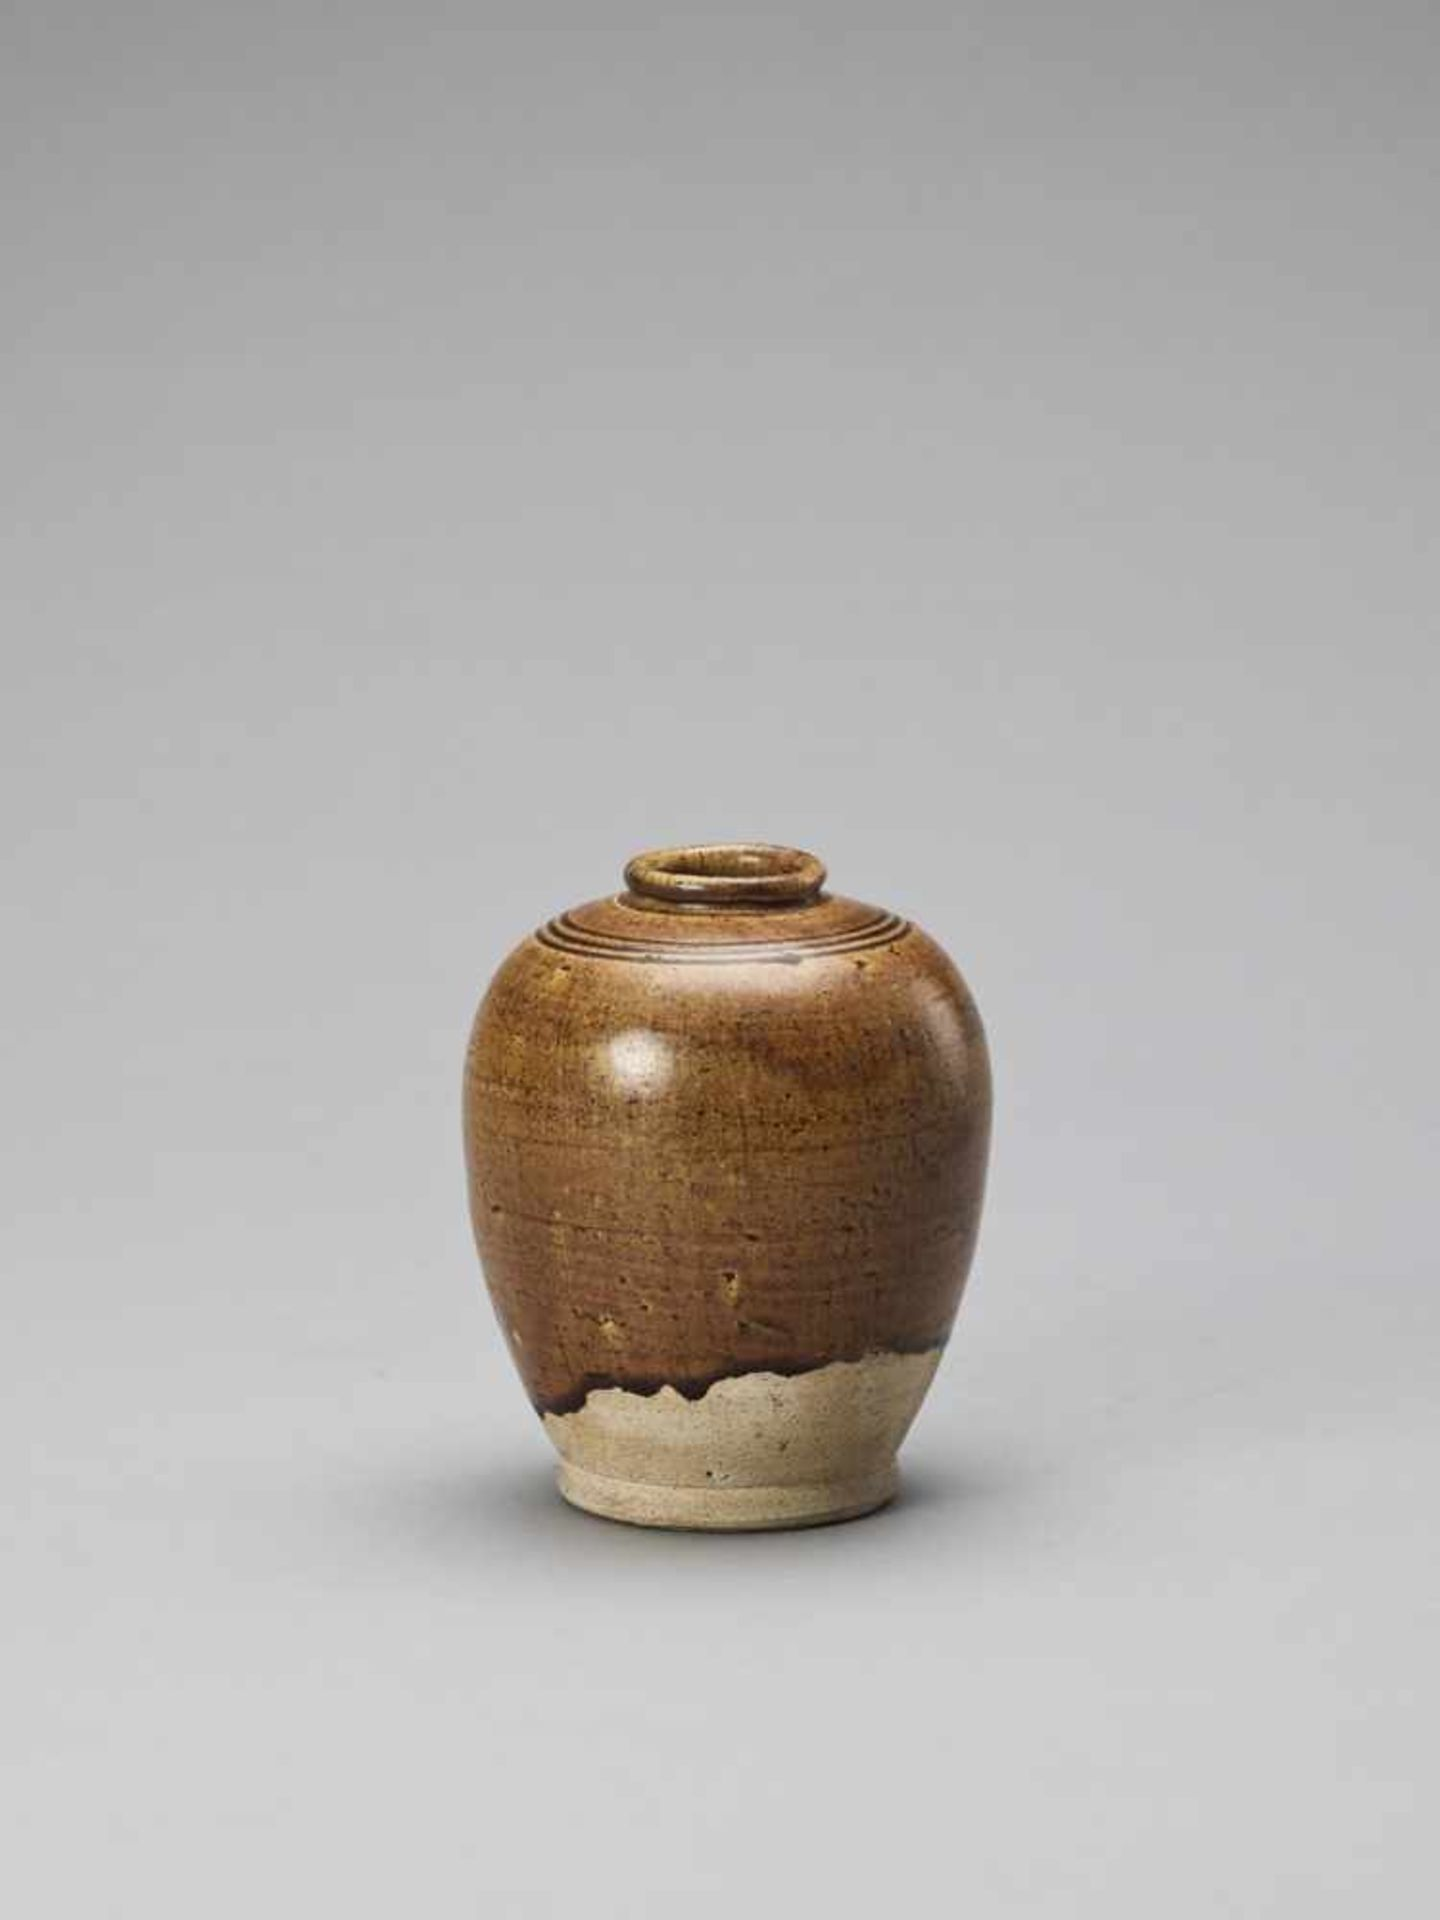 Los 399 - AN OCHRE BROWN-GLAZED POTTERY JAR, TANG